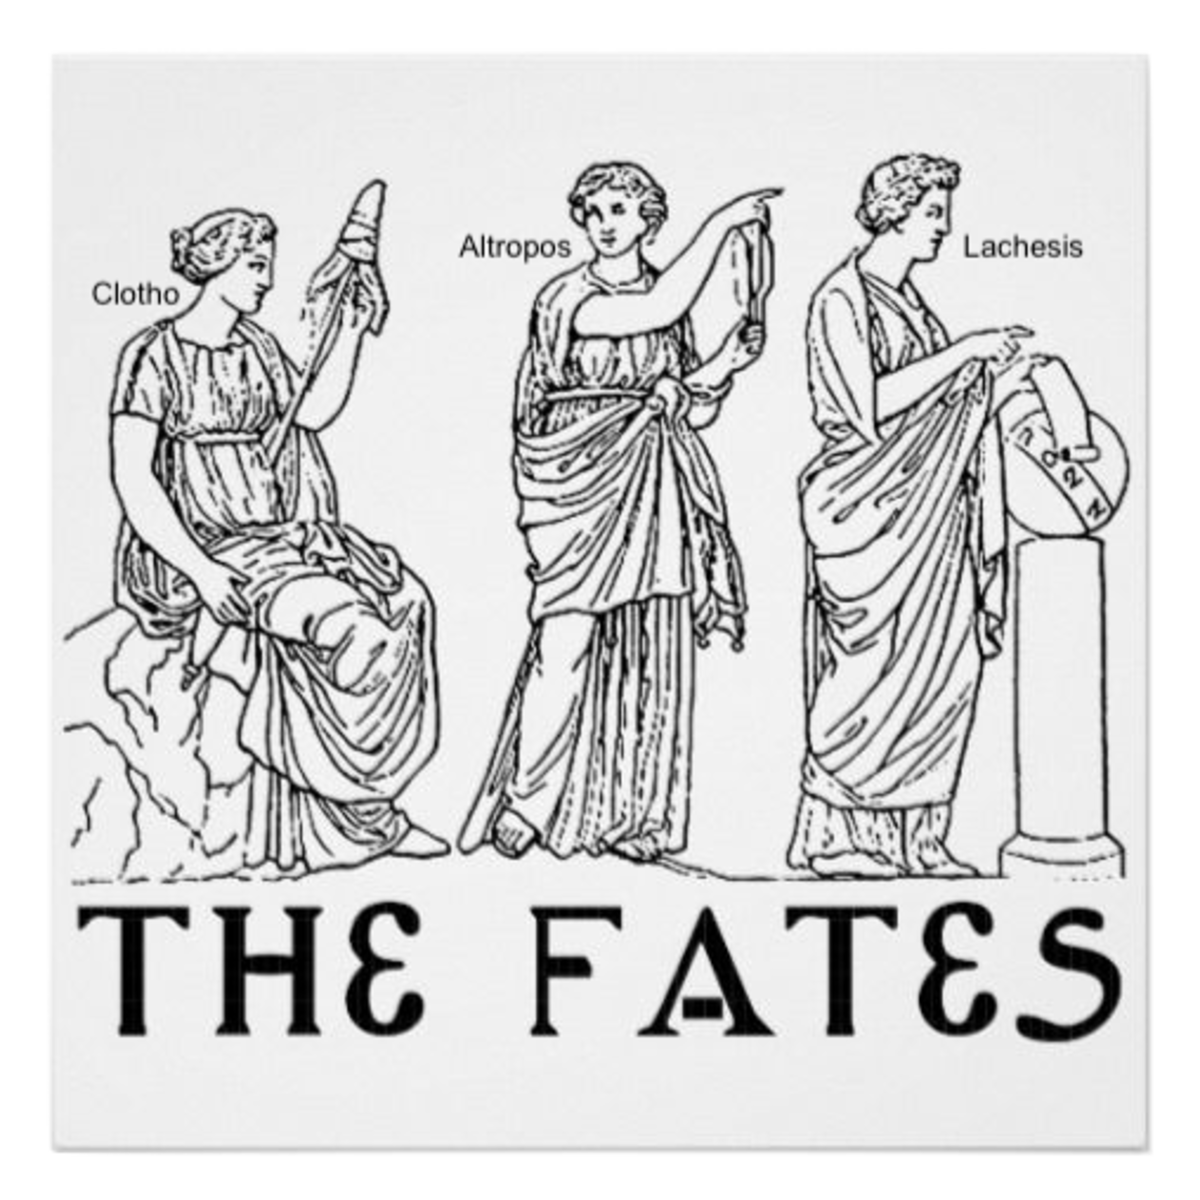 In Greek and Roman mythology, Clotho was the spinner, Atropos cut the thread, and Lachesis did the measuring of the cloth of human life.